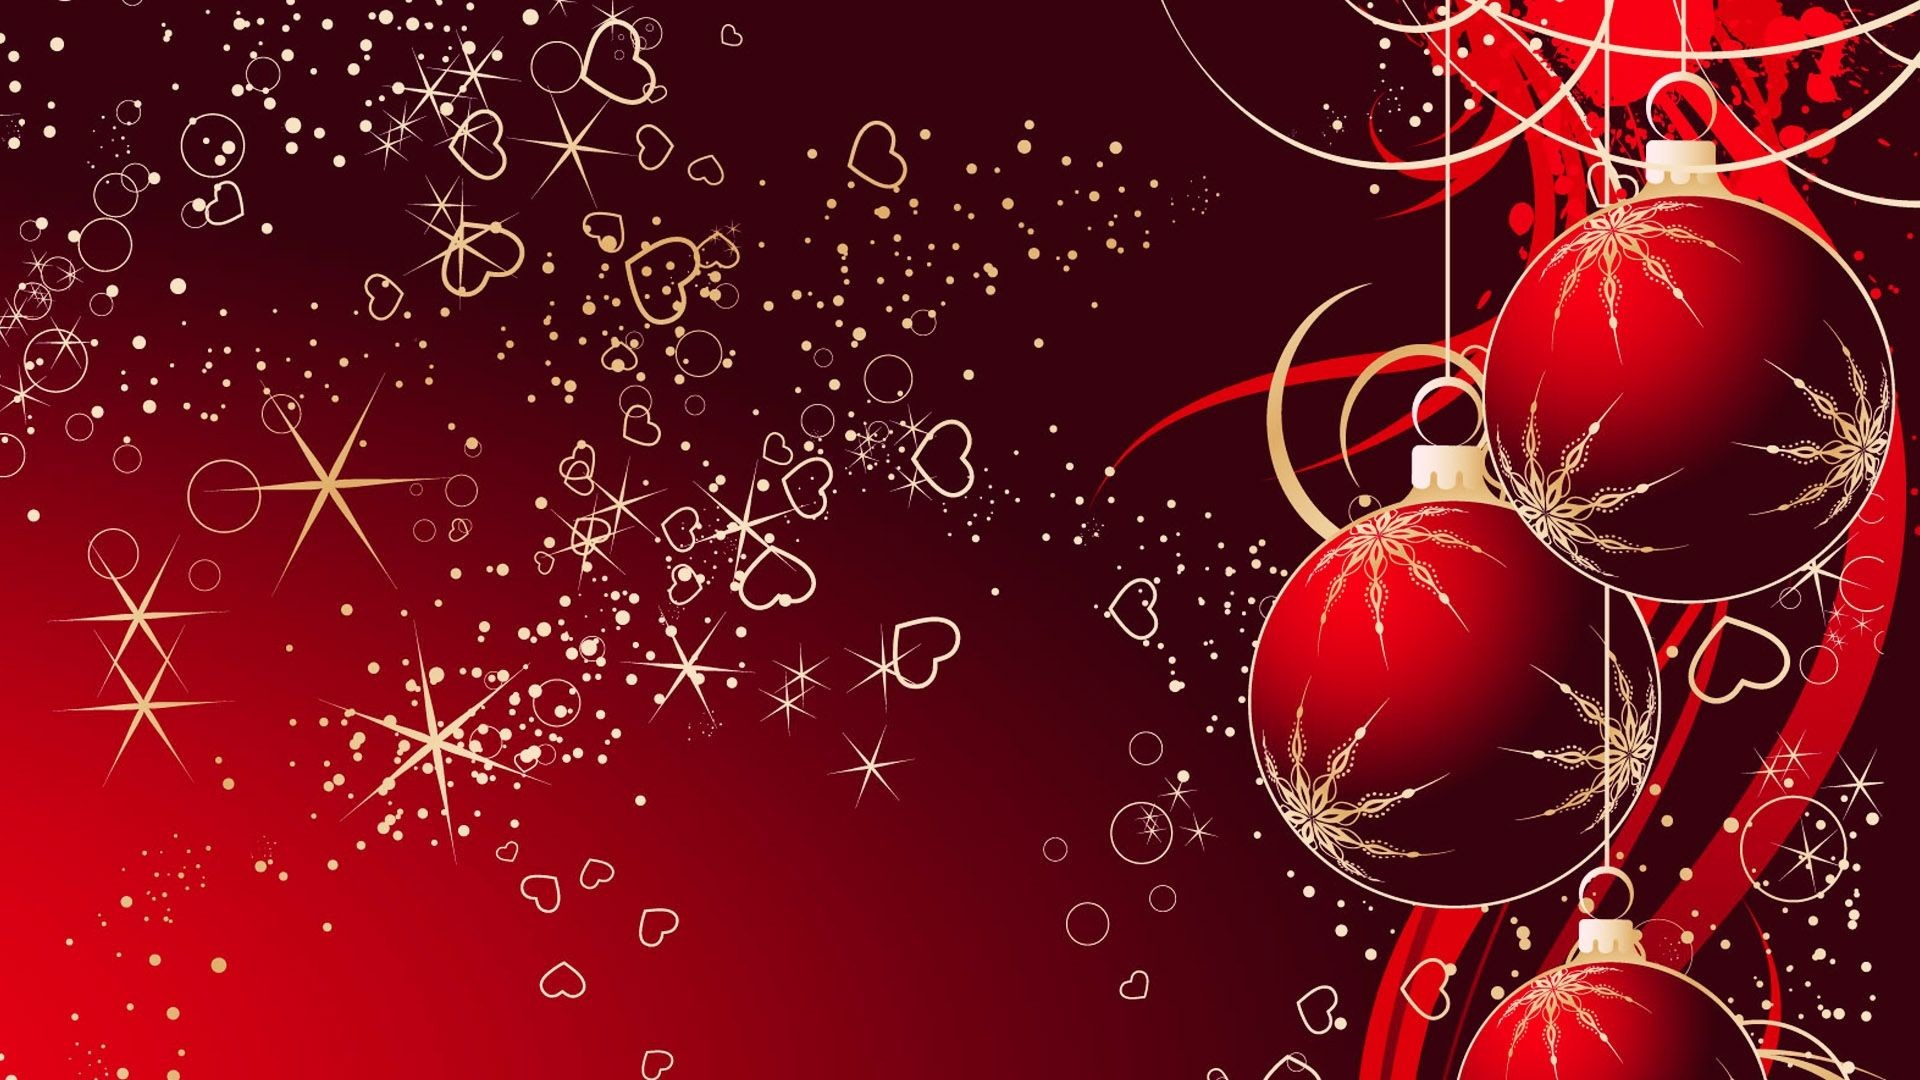 Res: 1920x1080, Free Christmas HD Wallpapers